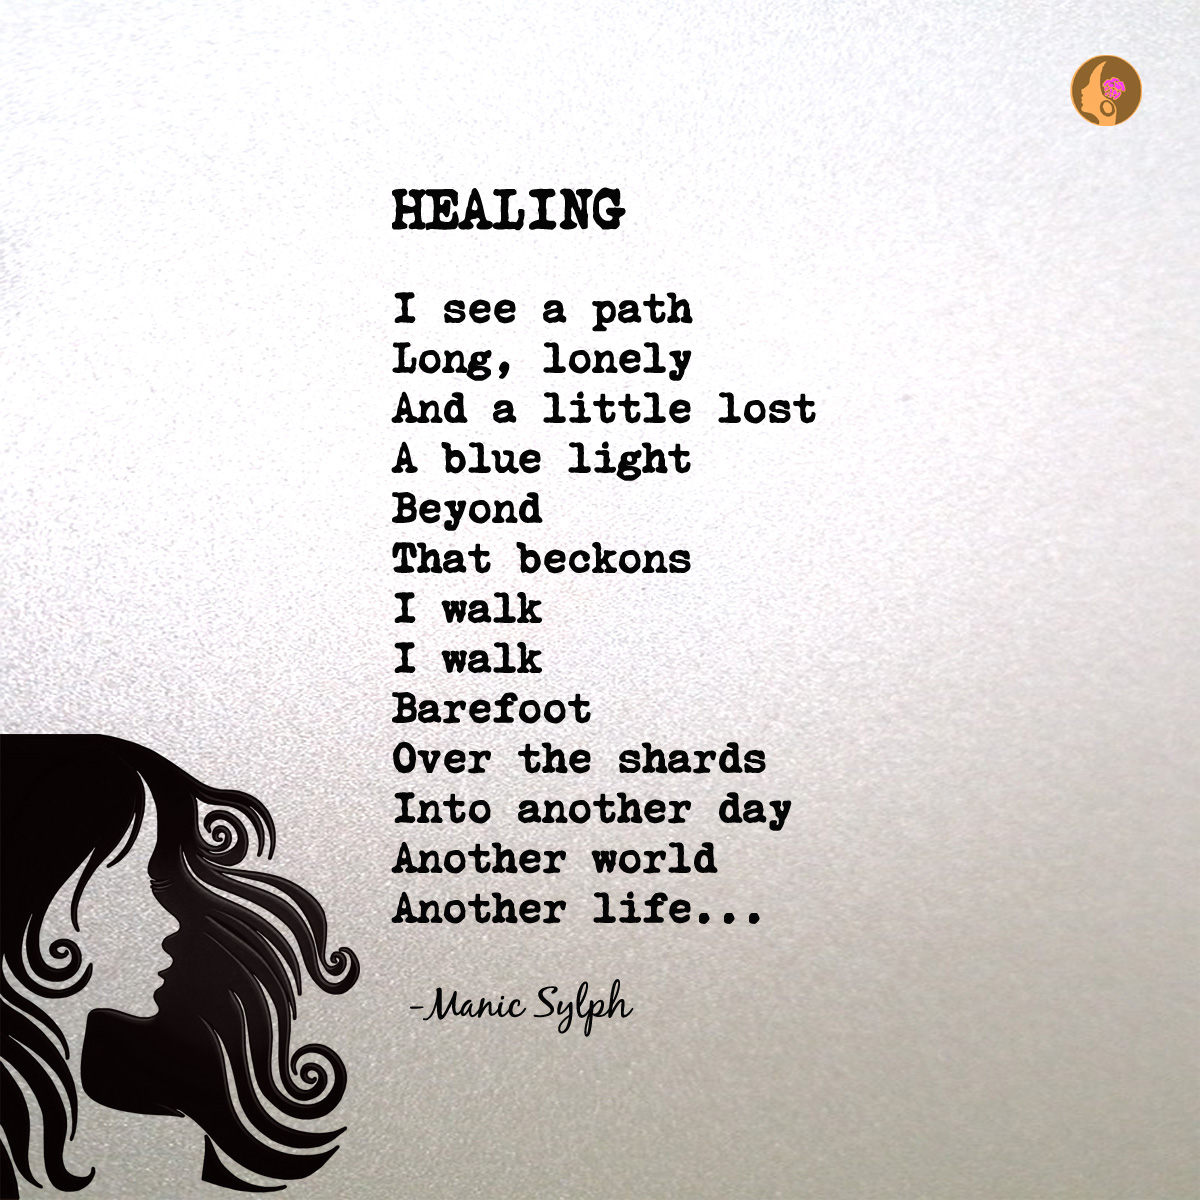 The poem HEALING by Mona Soorma aka Manic Sylph